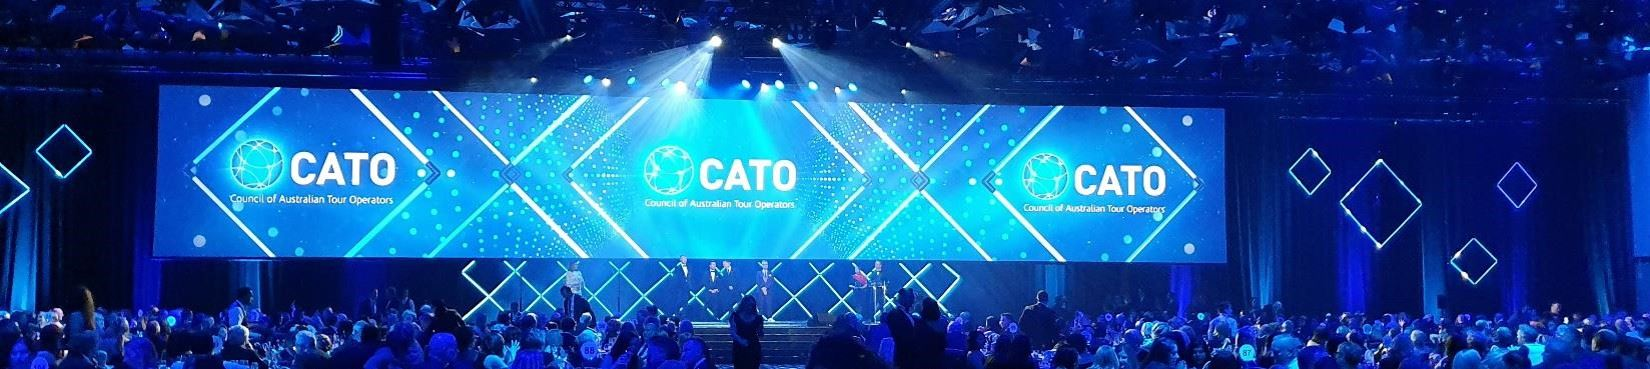 CATO Awards Opening